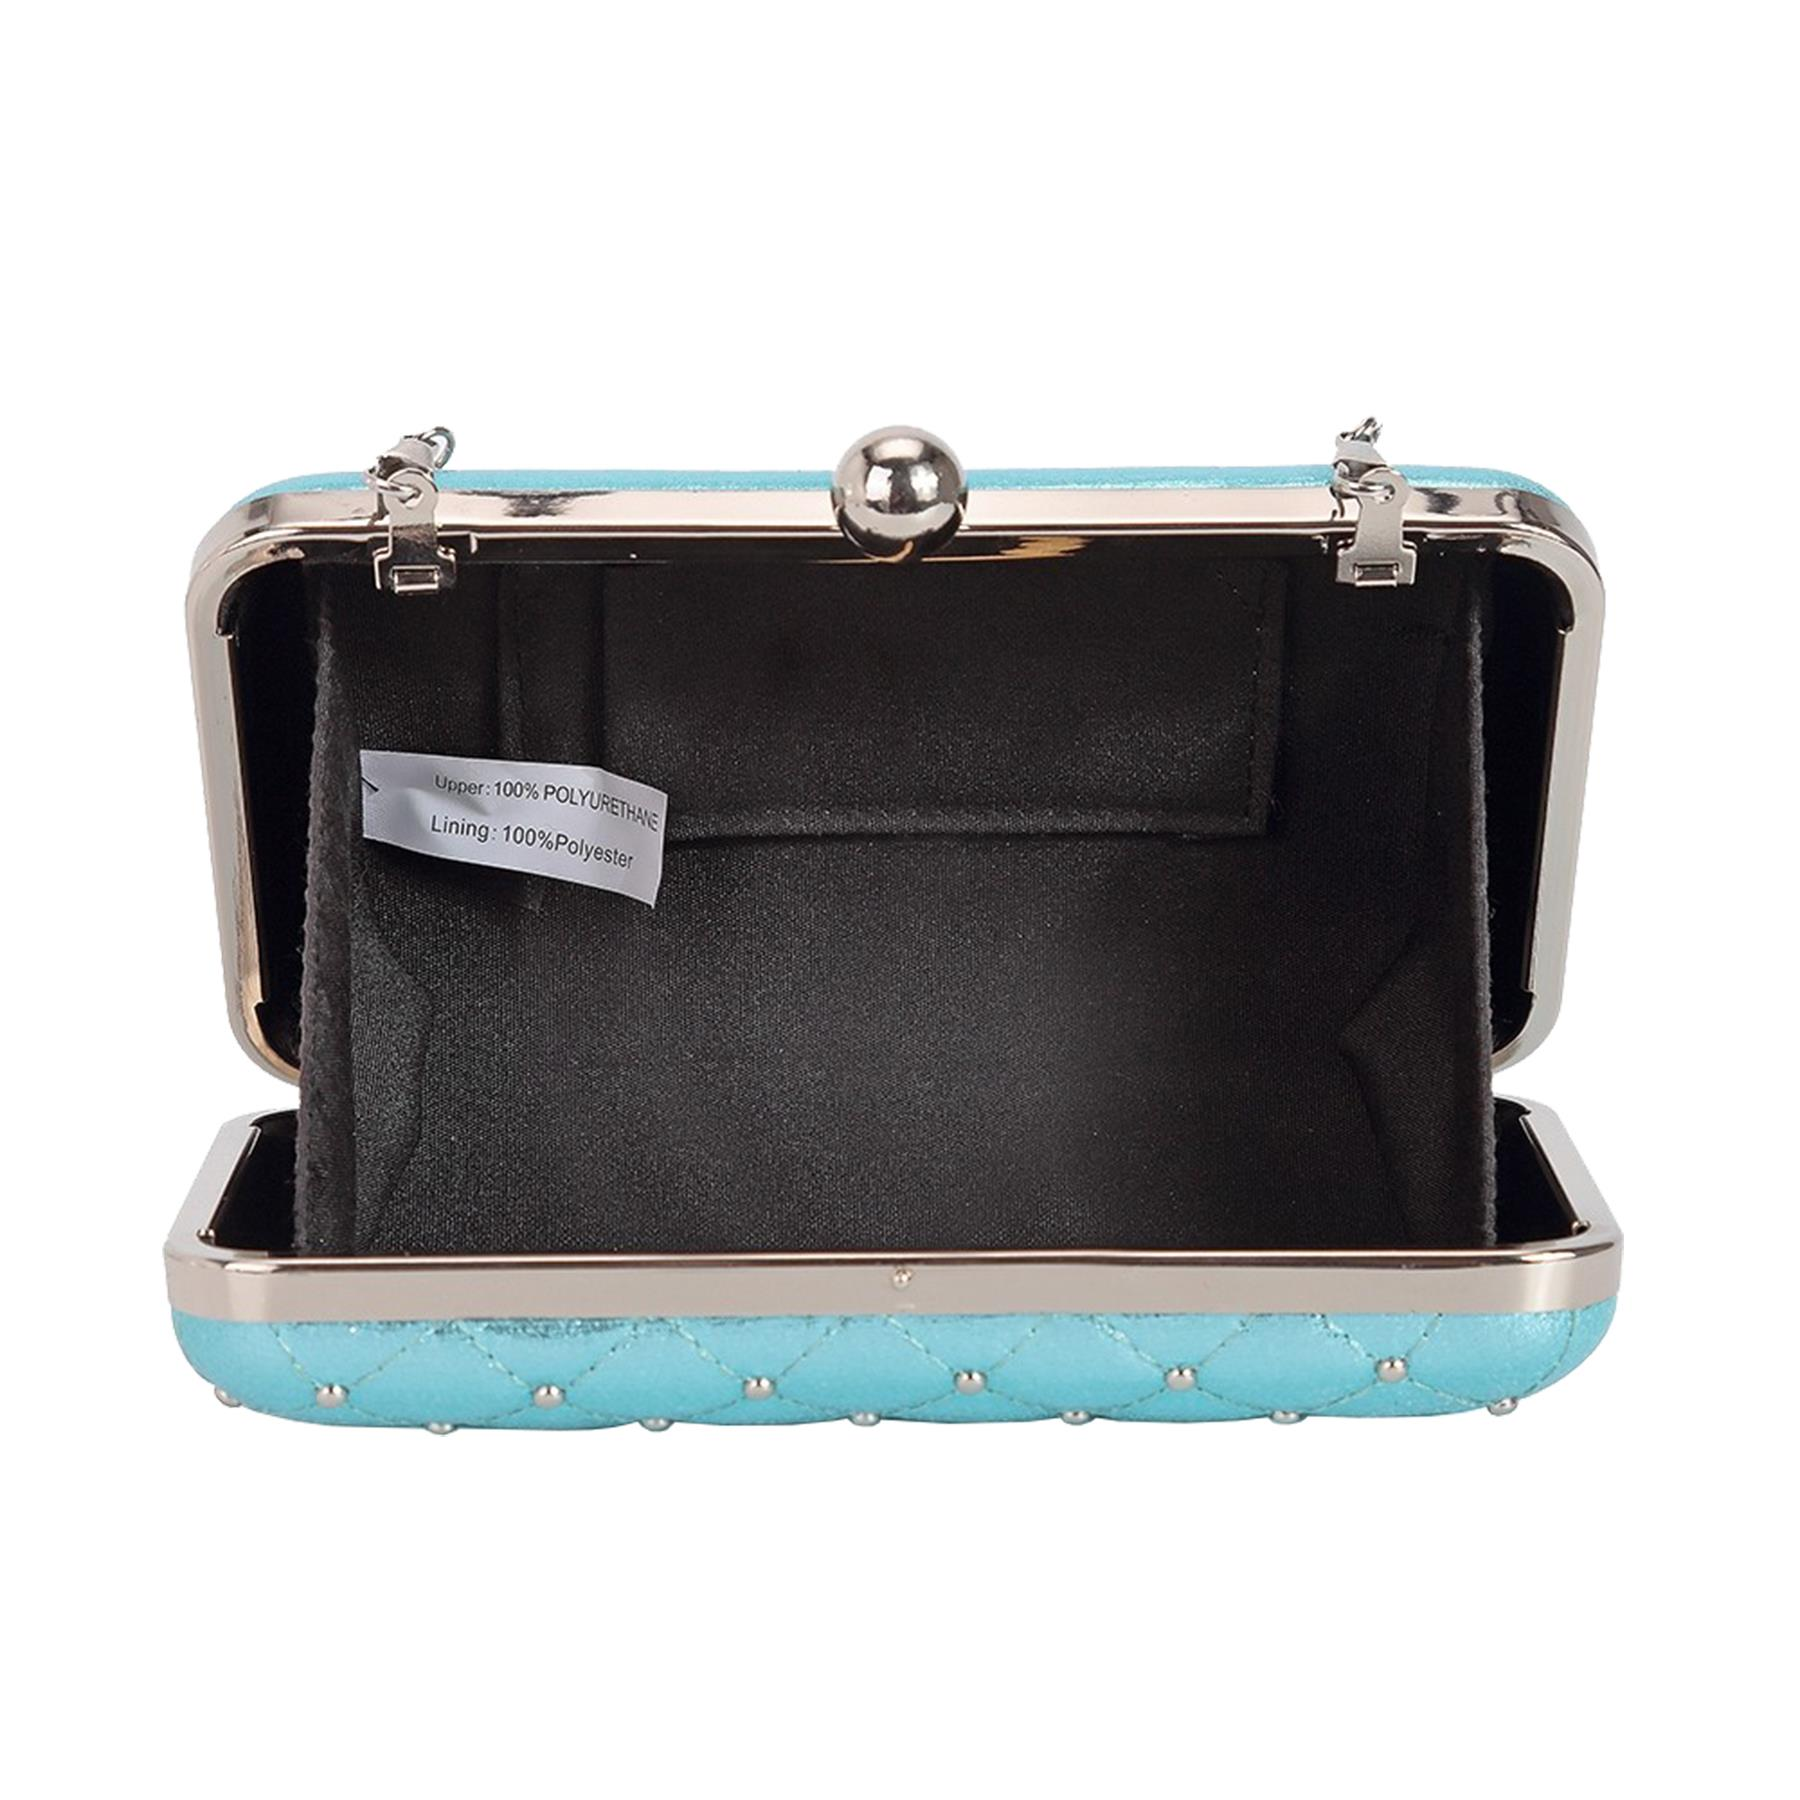 New-Women-s-Quilted-Studded-Faux-Leather-Party-Bridal-Prom-Box-Clutch-Bag thumbnail 4